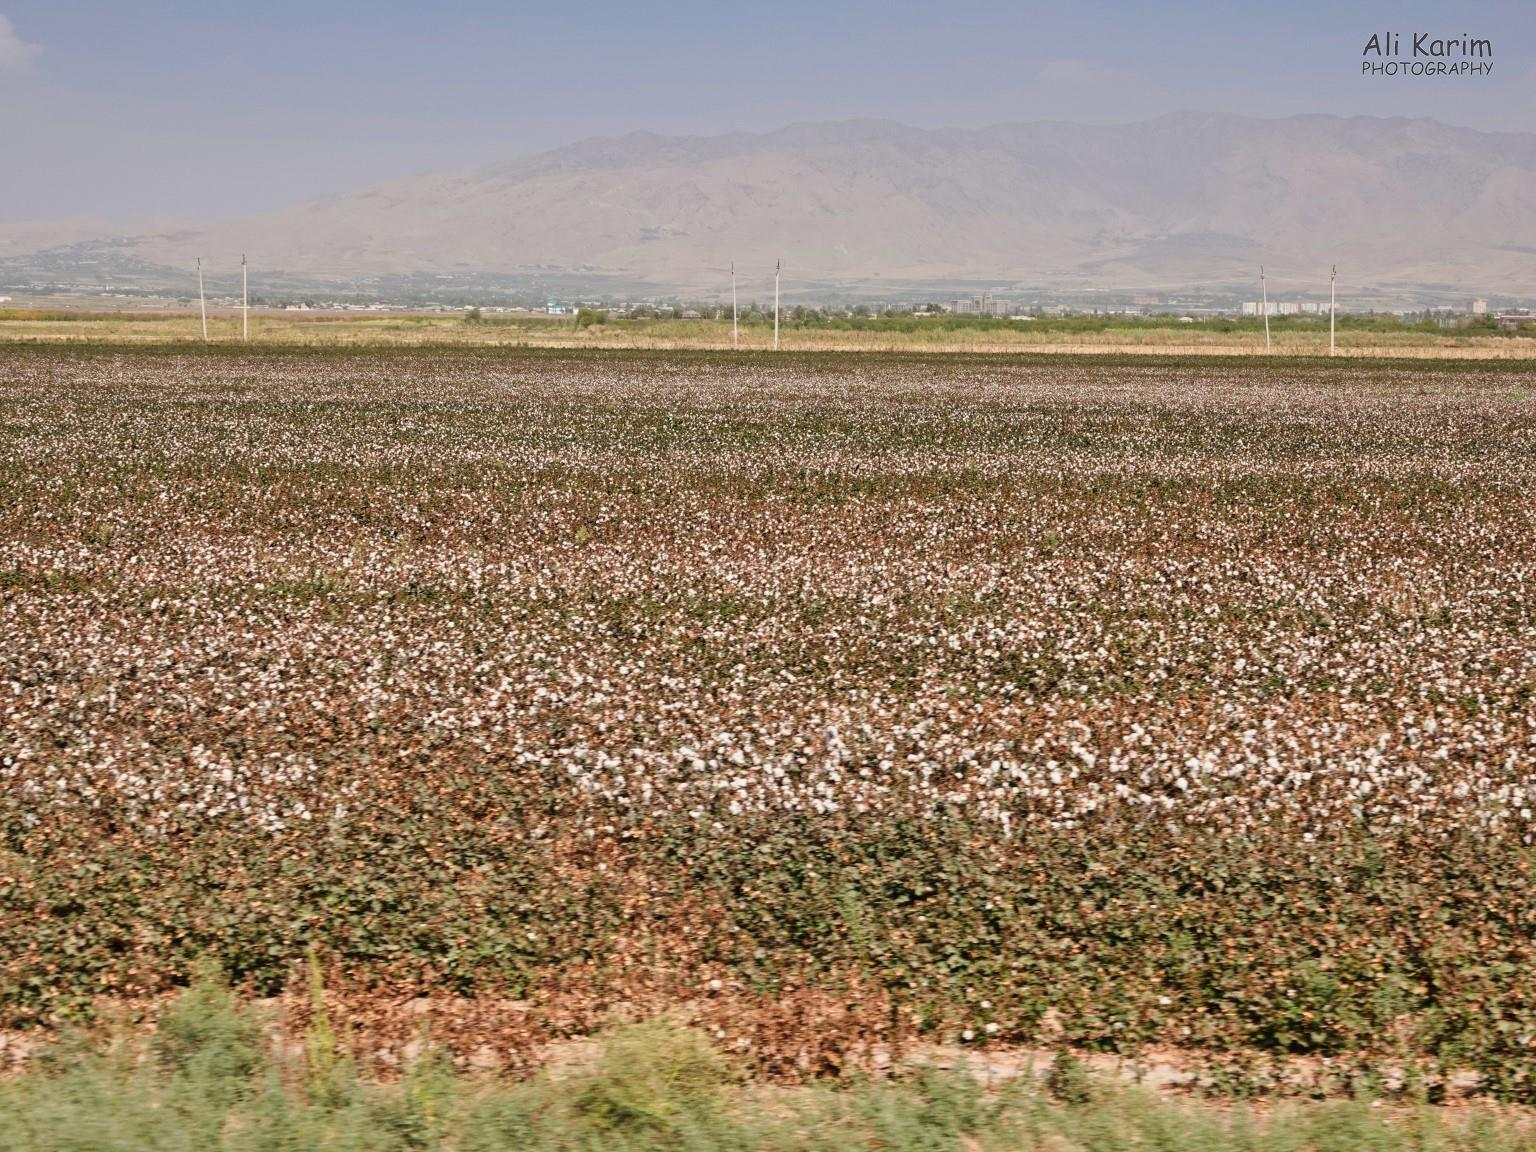 Dushanbe, Tajikistan Lots of cotton farming; a leftover from the Soviet days